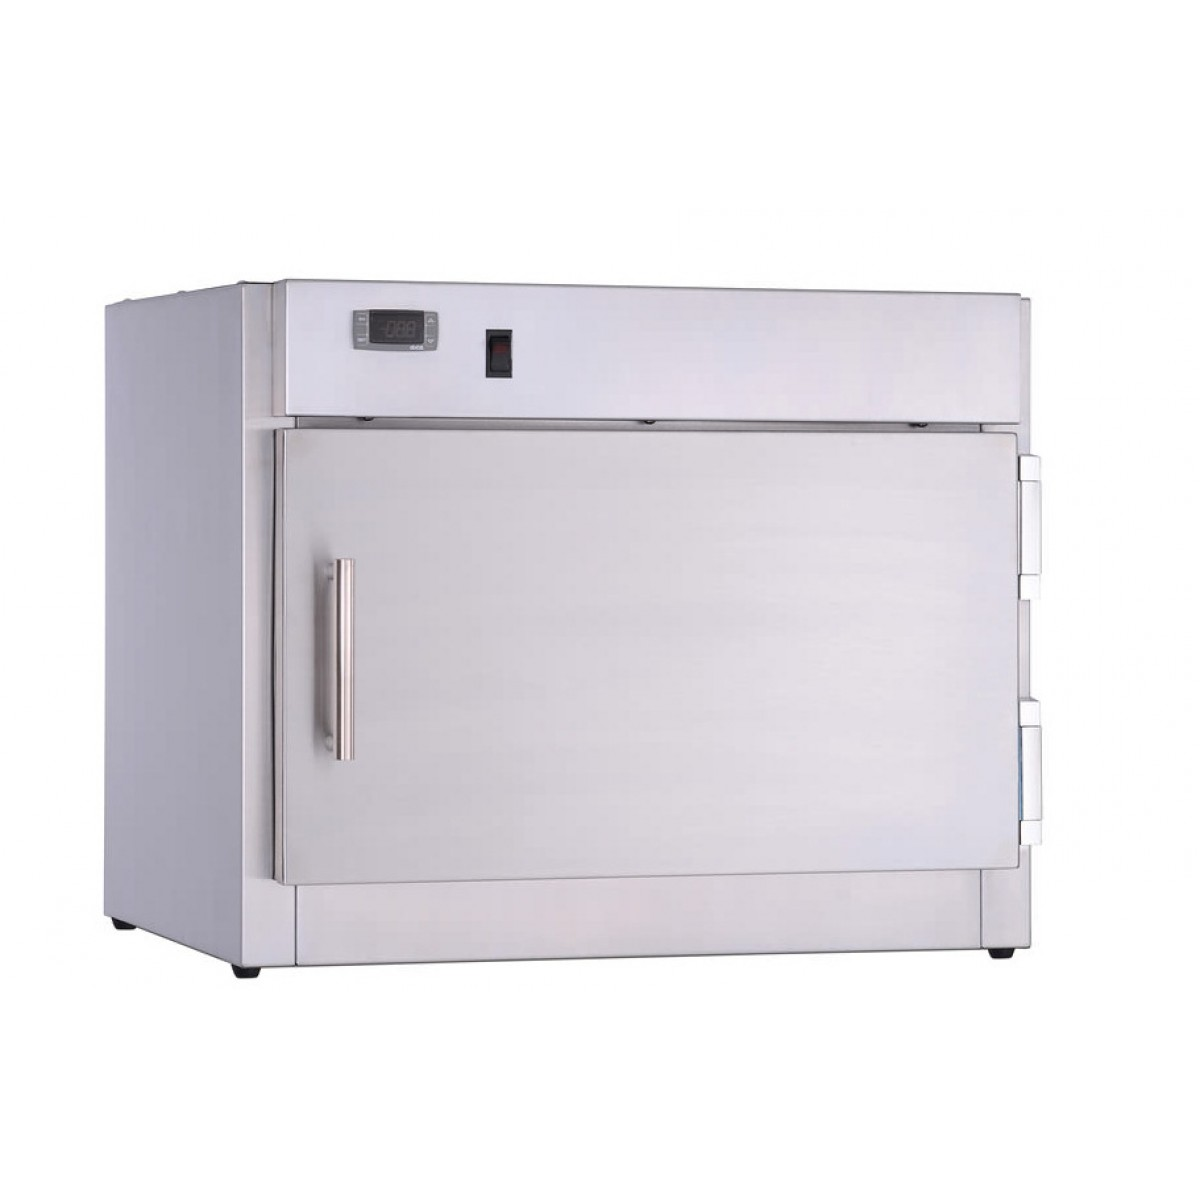 Countertop Warming Drawer Medwurx Countertop Blanket Warming Cabinets For Hospitals